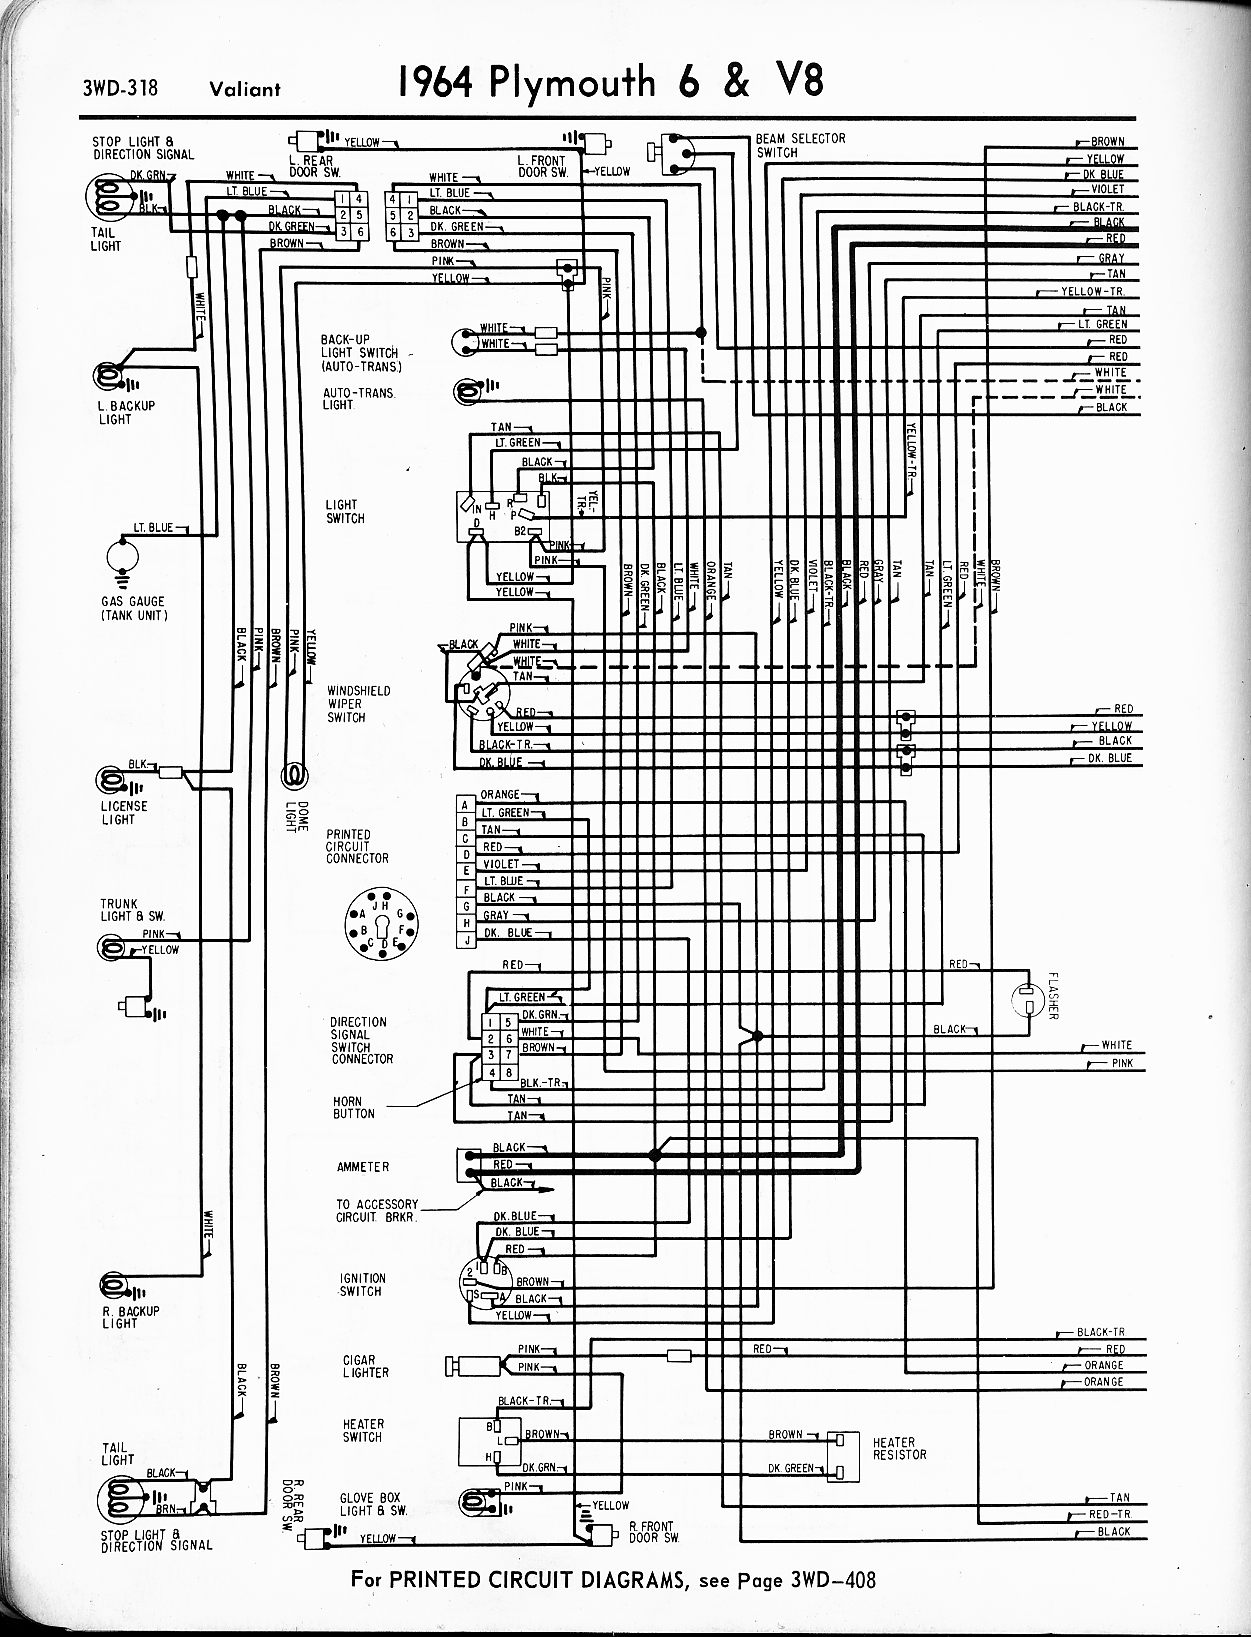 1956 1965 Plymouth Wiring The Old Car Manual Project 69 Fury Diagram 1964 6 V8 Valiant Left Page